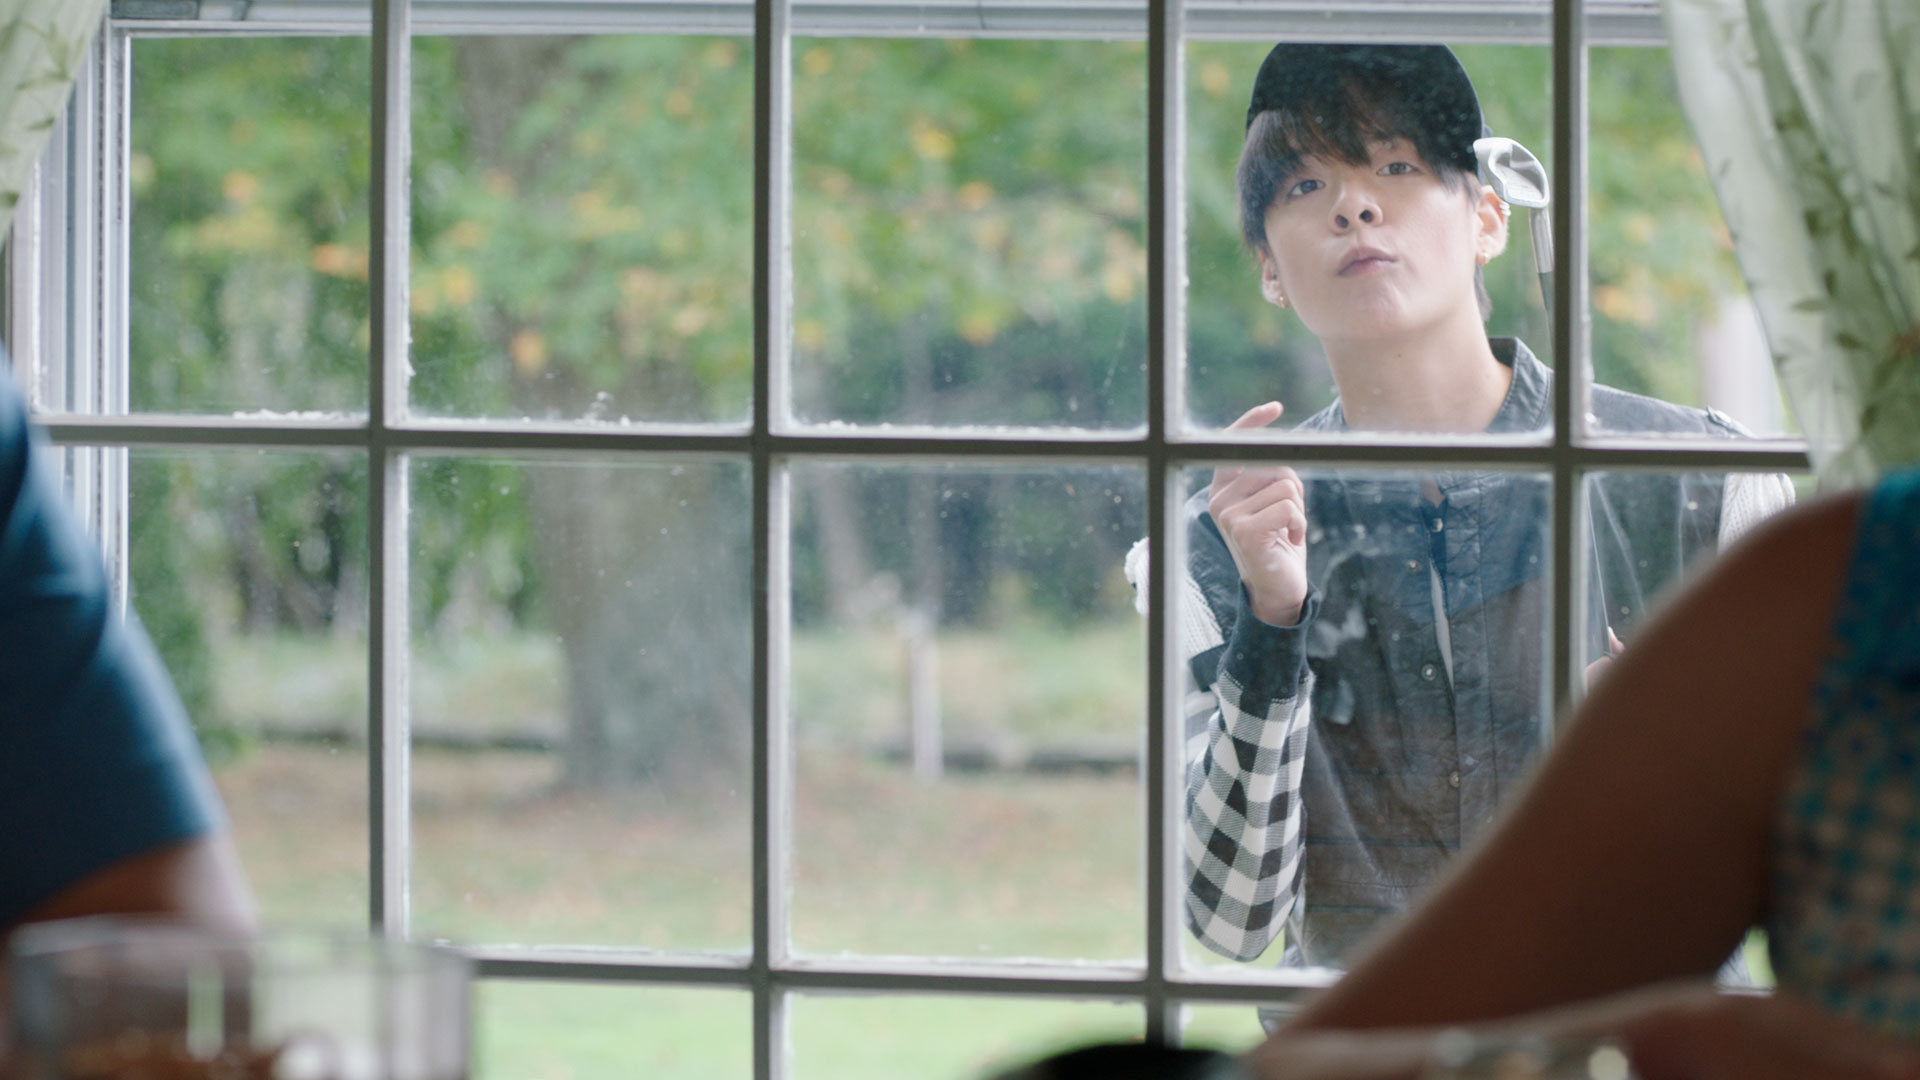 Amber-at-window.jpg